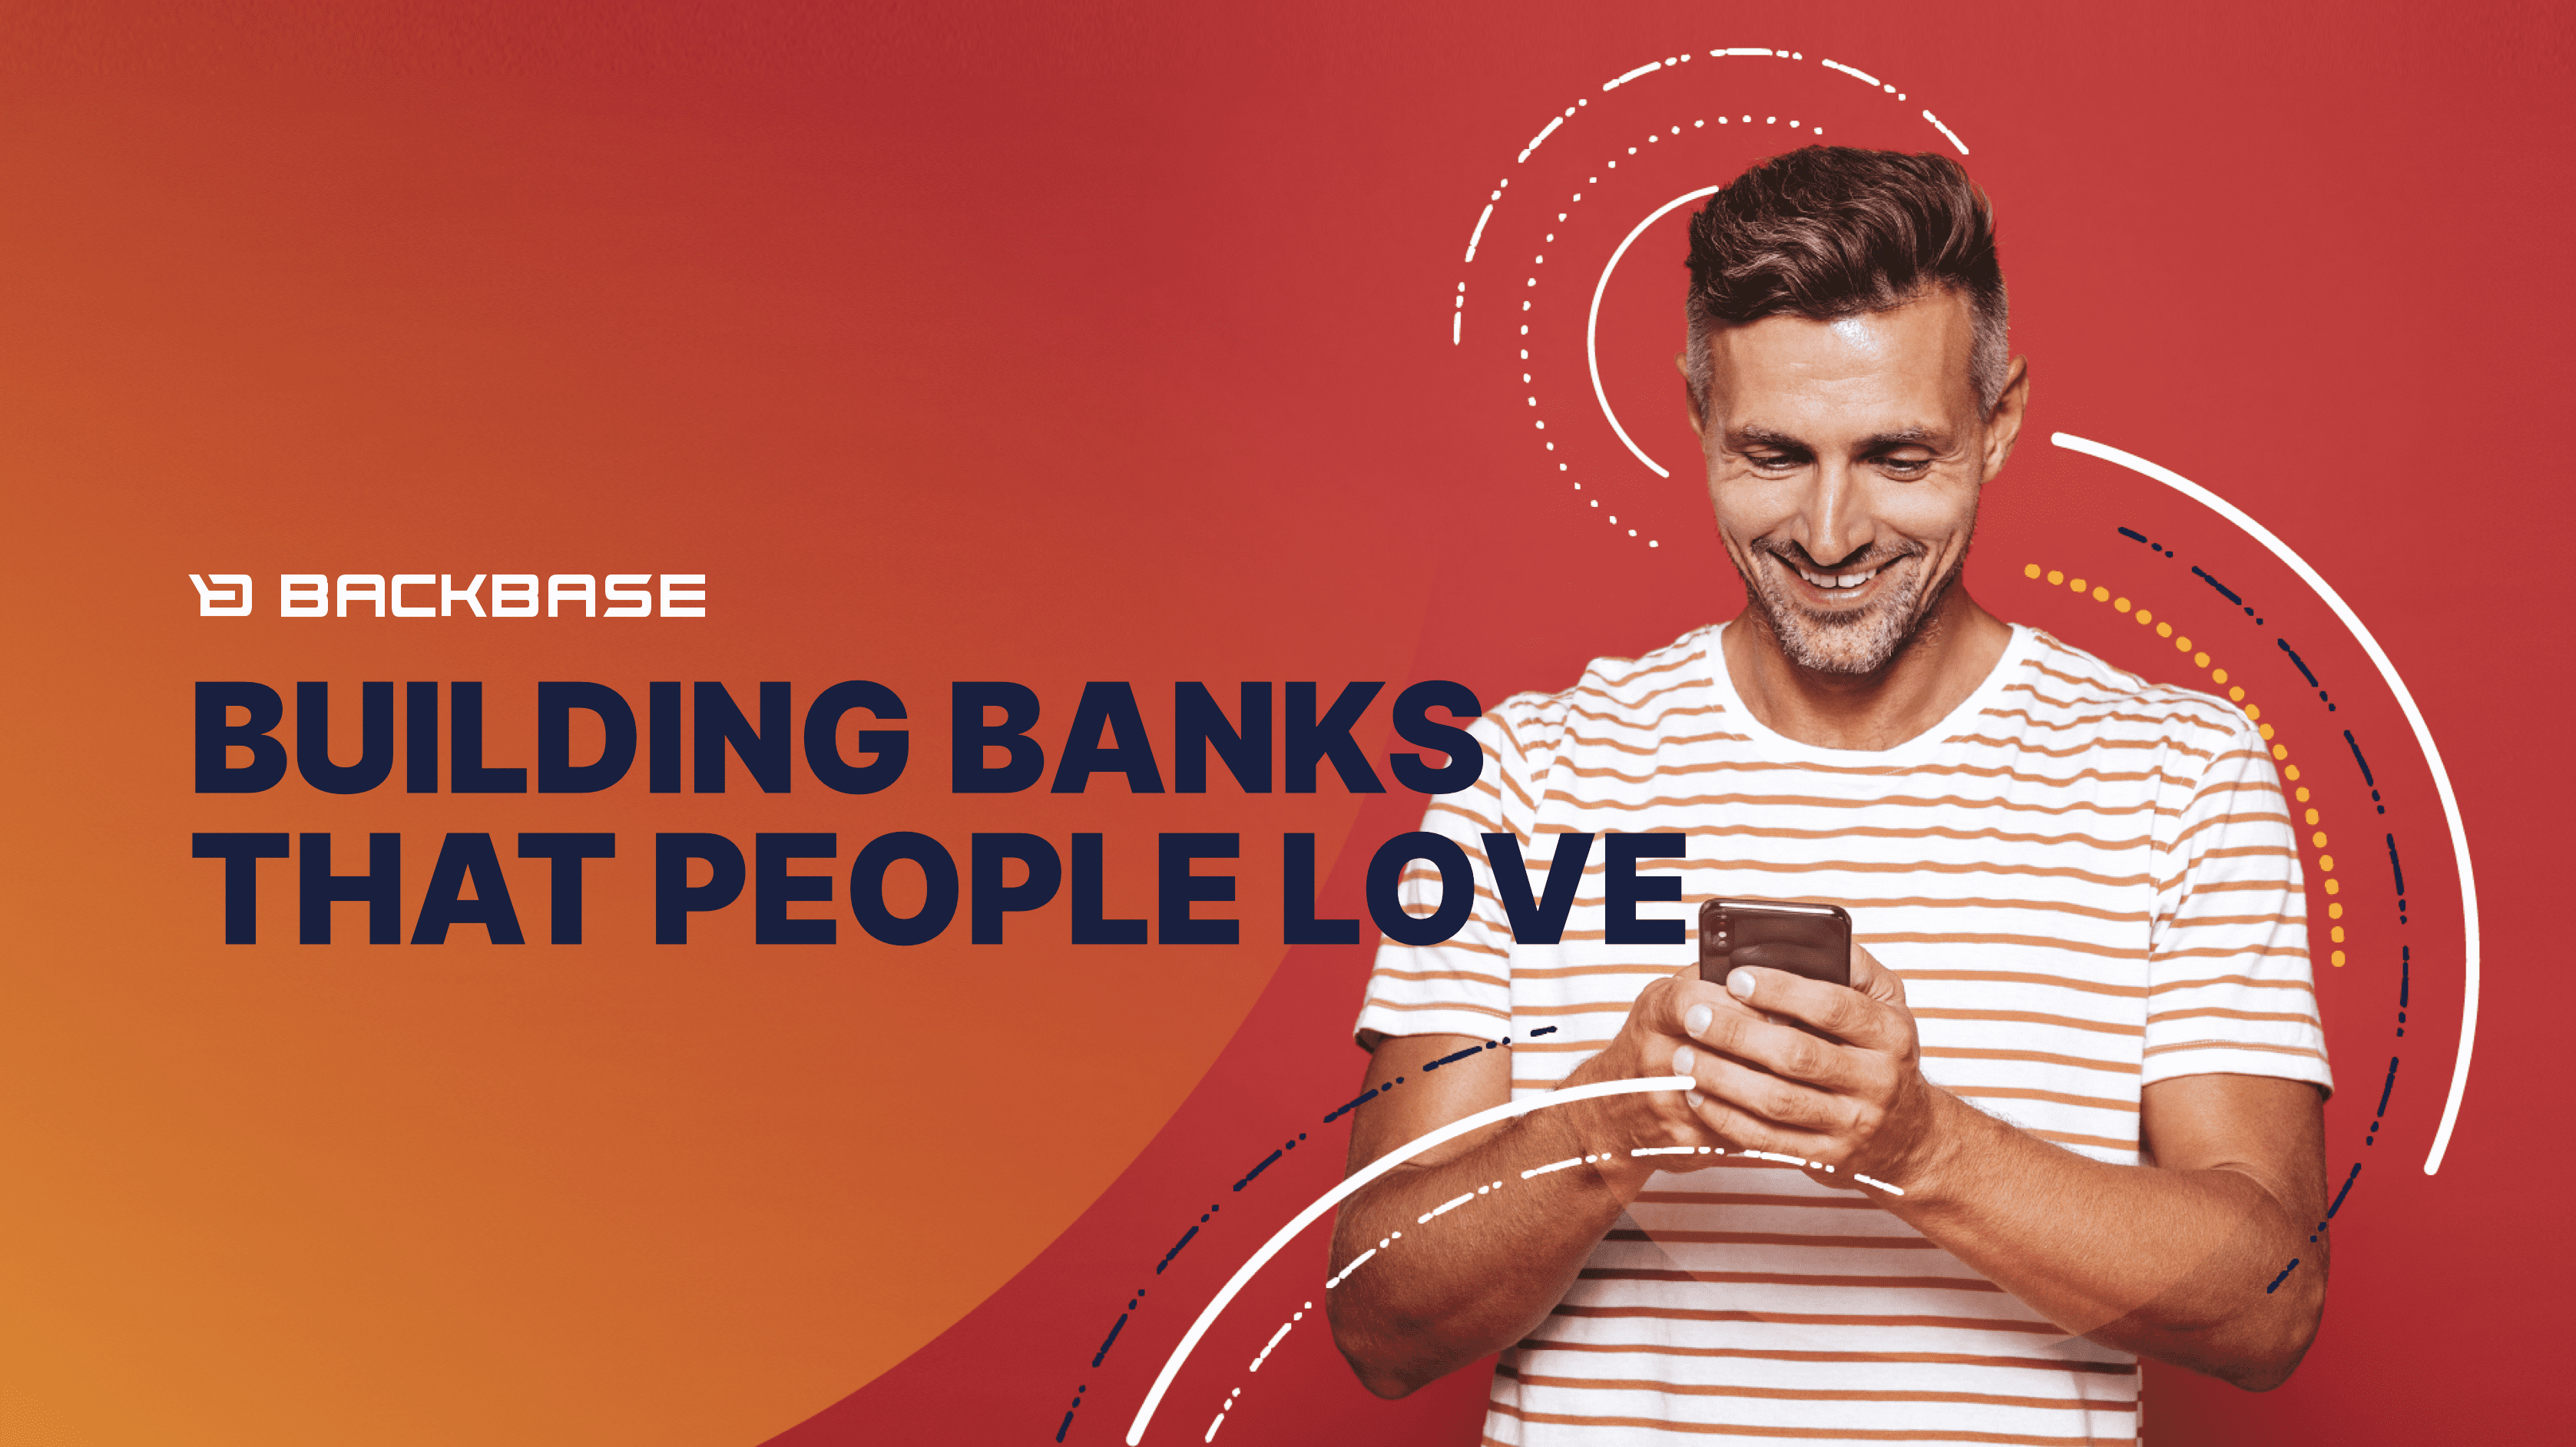 """Backbase Banner with the text """"Building banks that people love"""". In the background a man is holding a phone while smiling."""